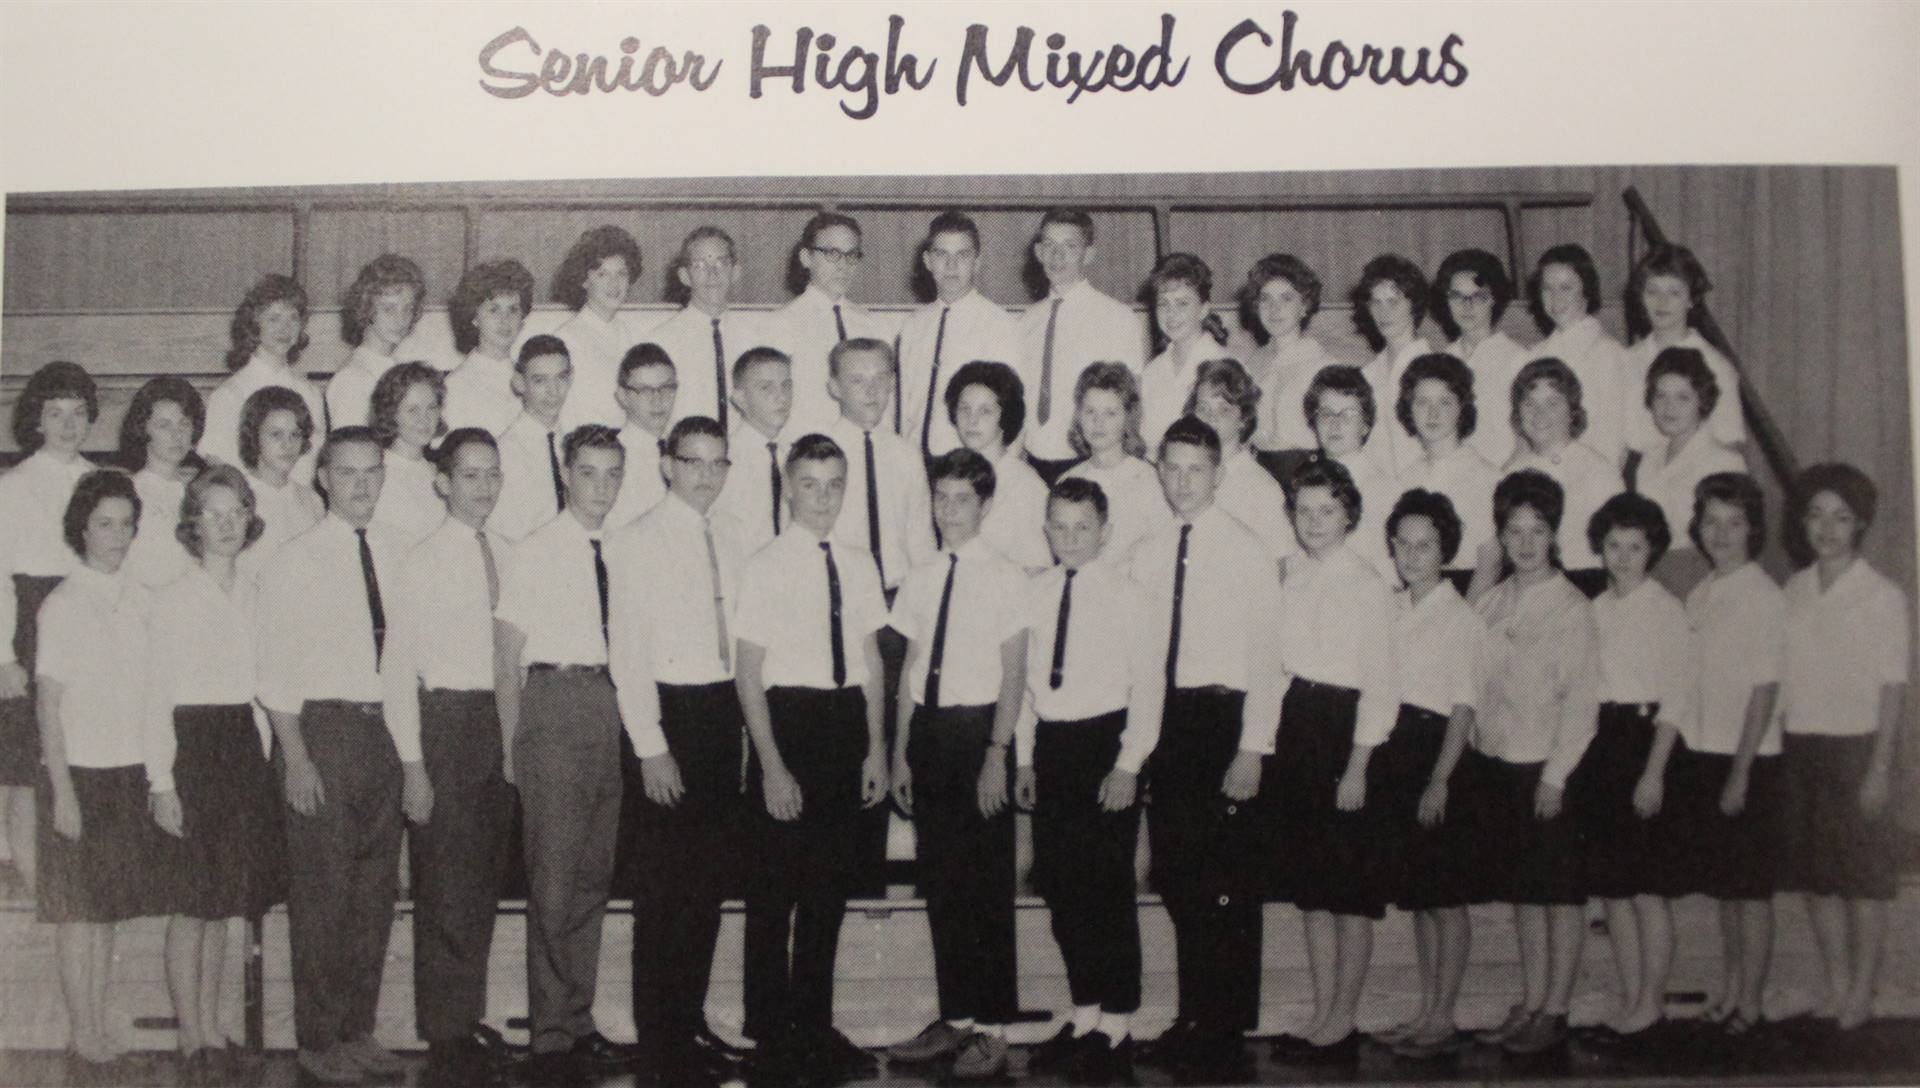 1964 Senior High Mixed Chorus